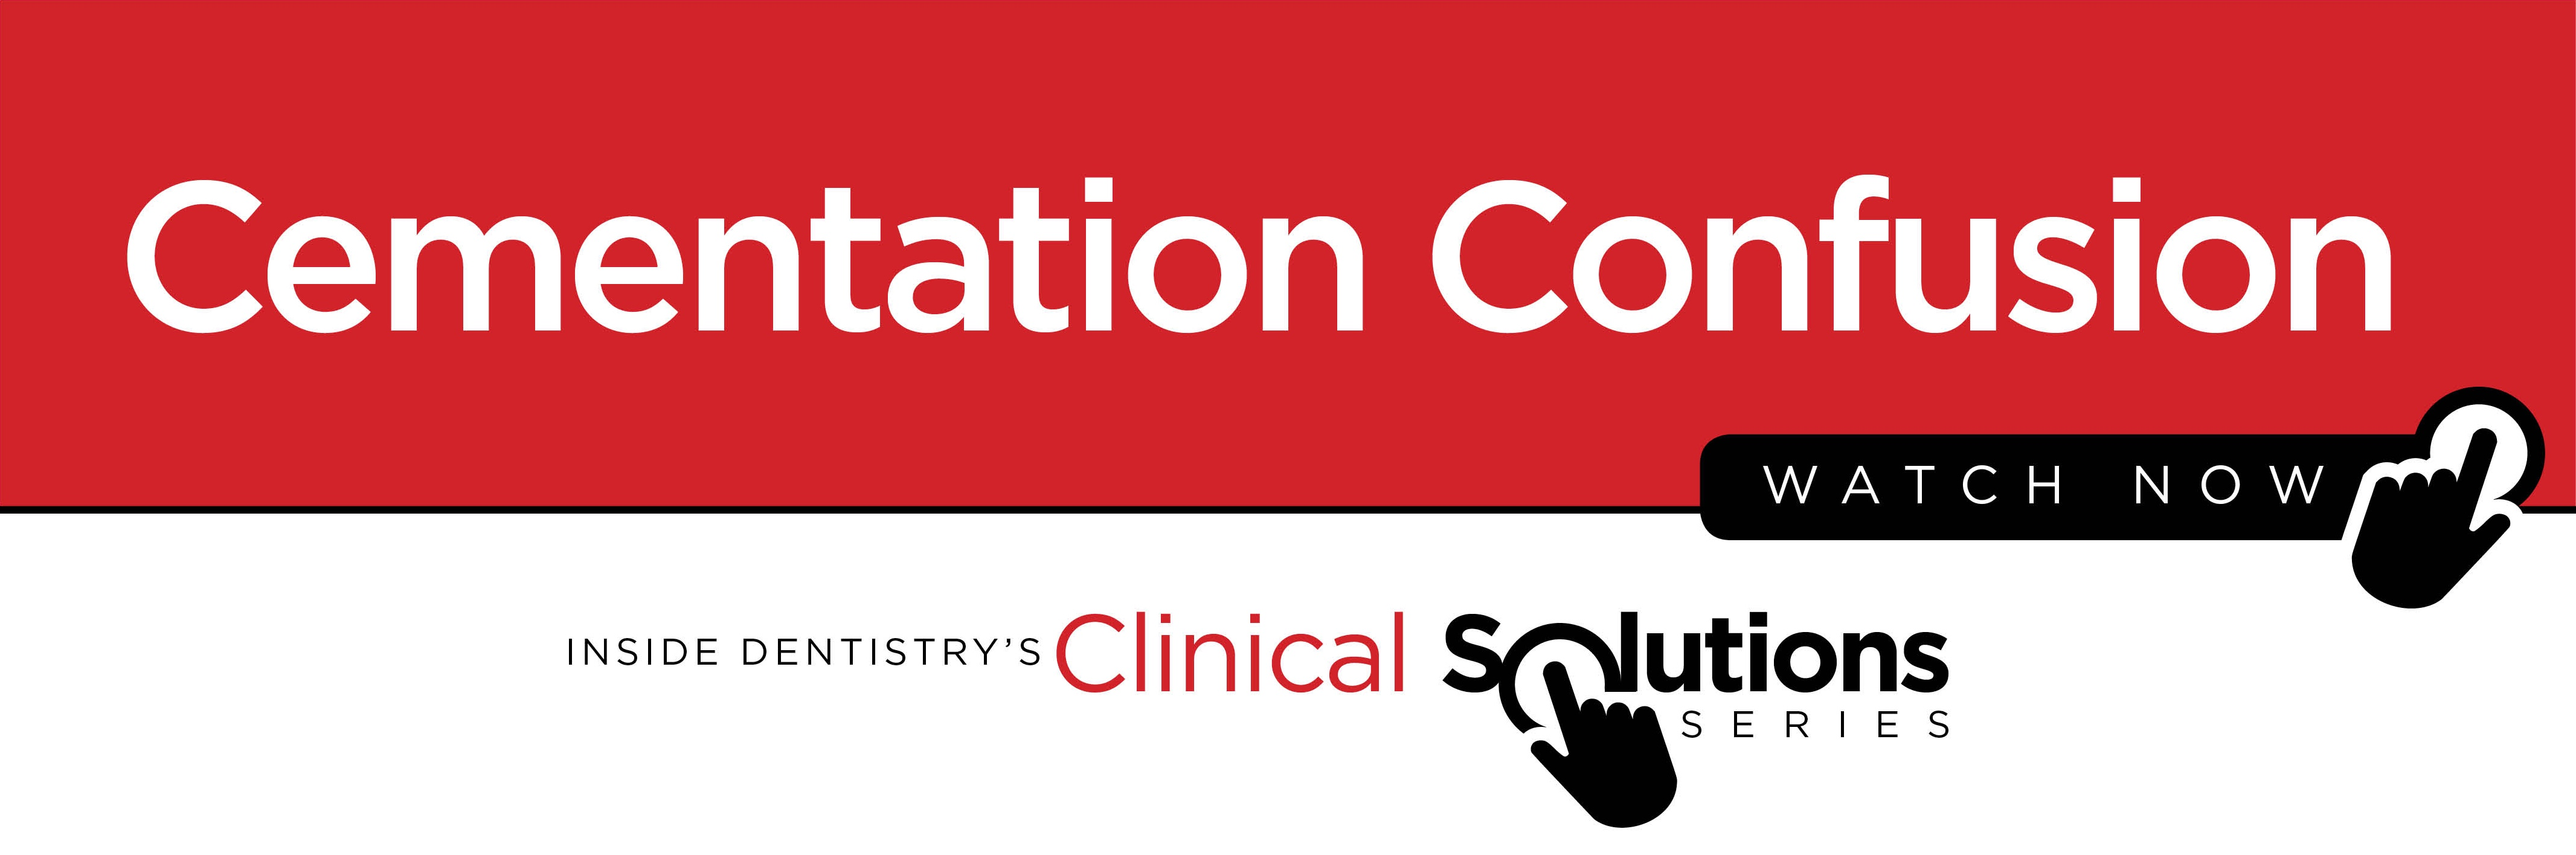 Clinical Solutions Series Banner